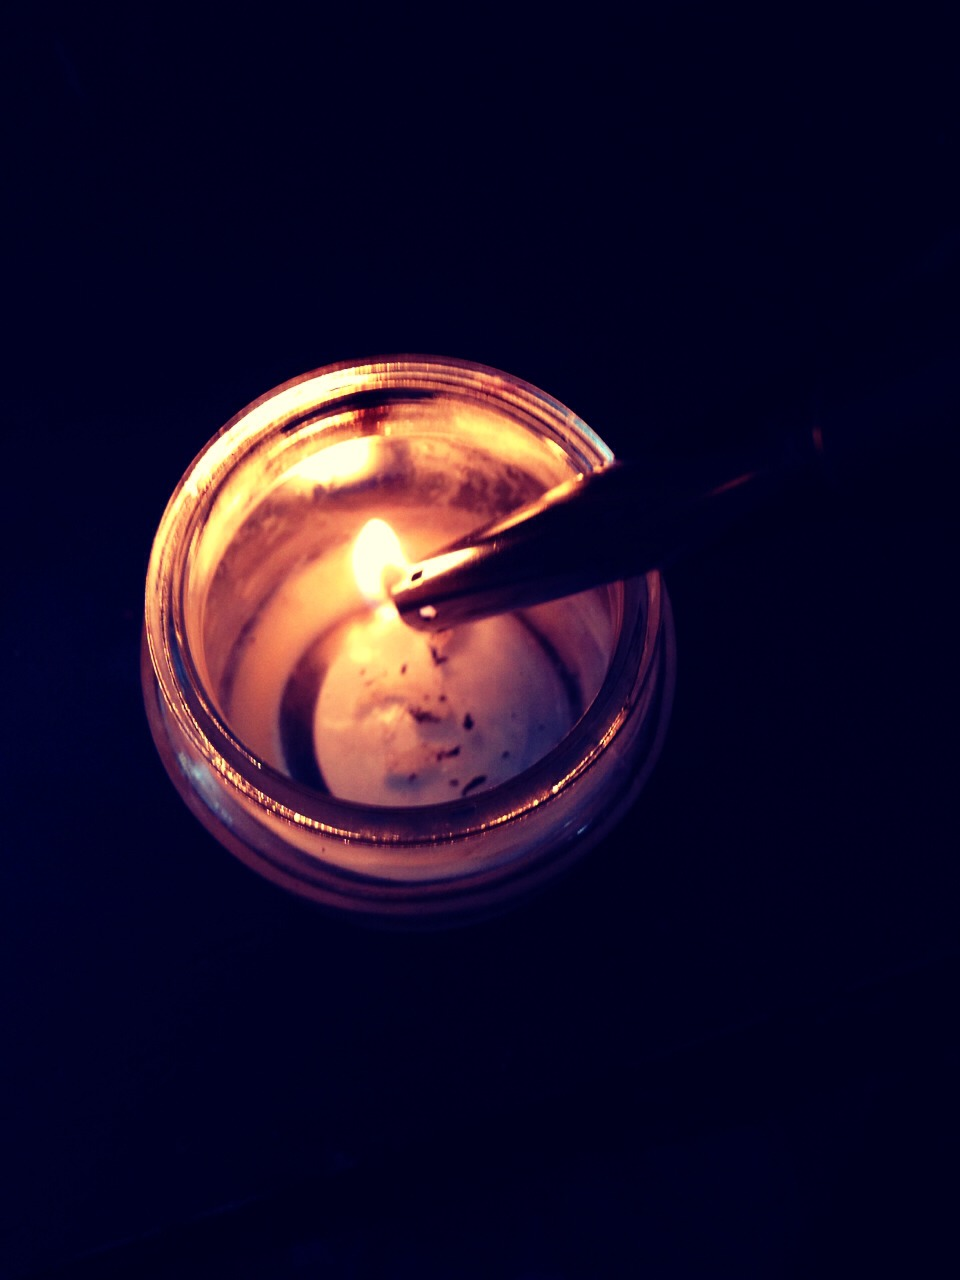 Clean out the jar with the lighter